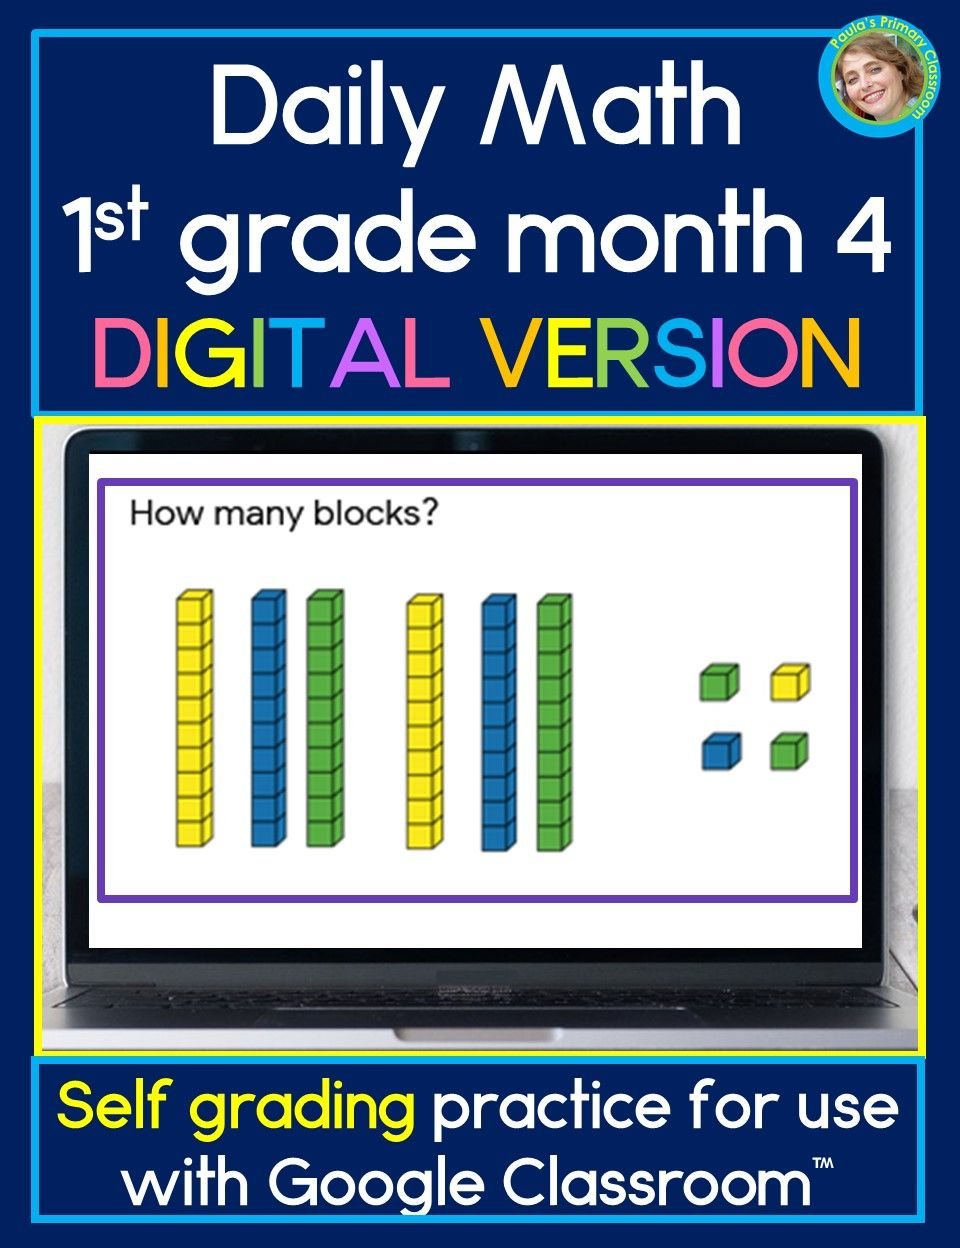 Daily Math First Grade Month 4 For Use With Google Classroom Digital Learning Daily Math Math Daily Math Activities [ 1248 x 960 Pixel ]